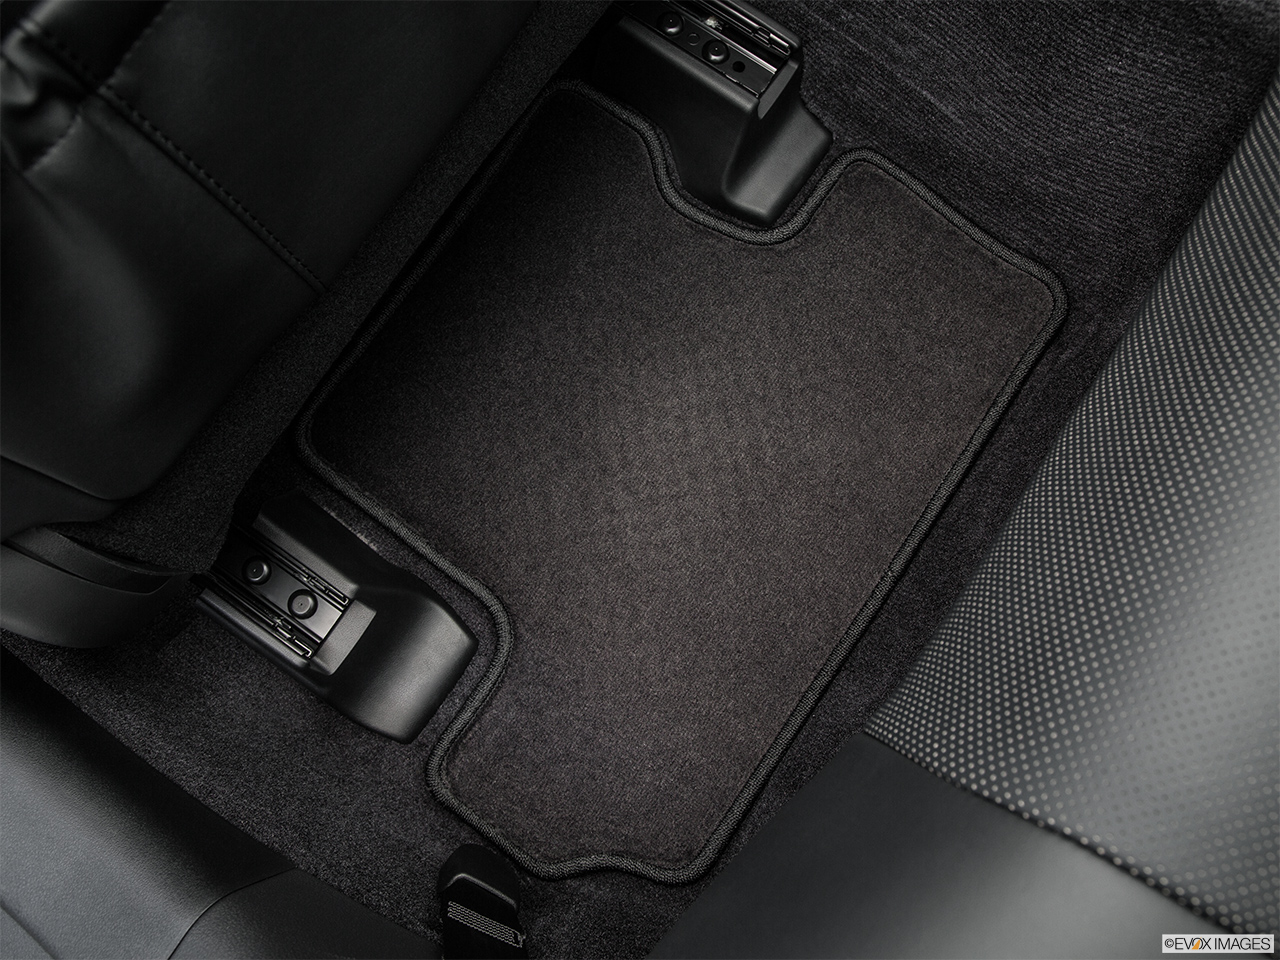 2015 Lexus IS C IS250 RWD Rear driver's side floor mat. Mid-seat level from outside looking in.